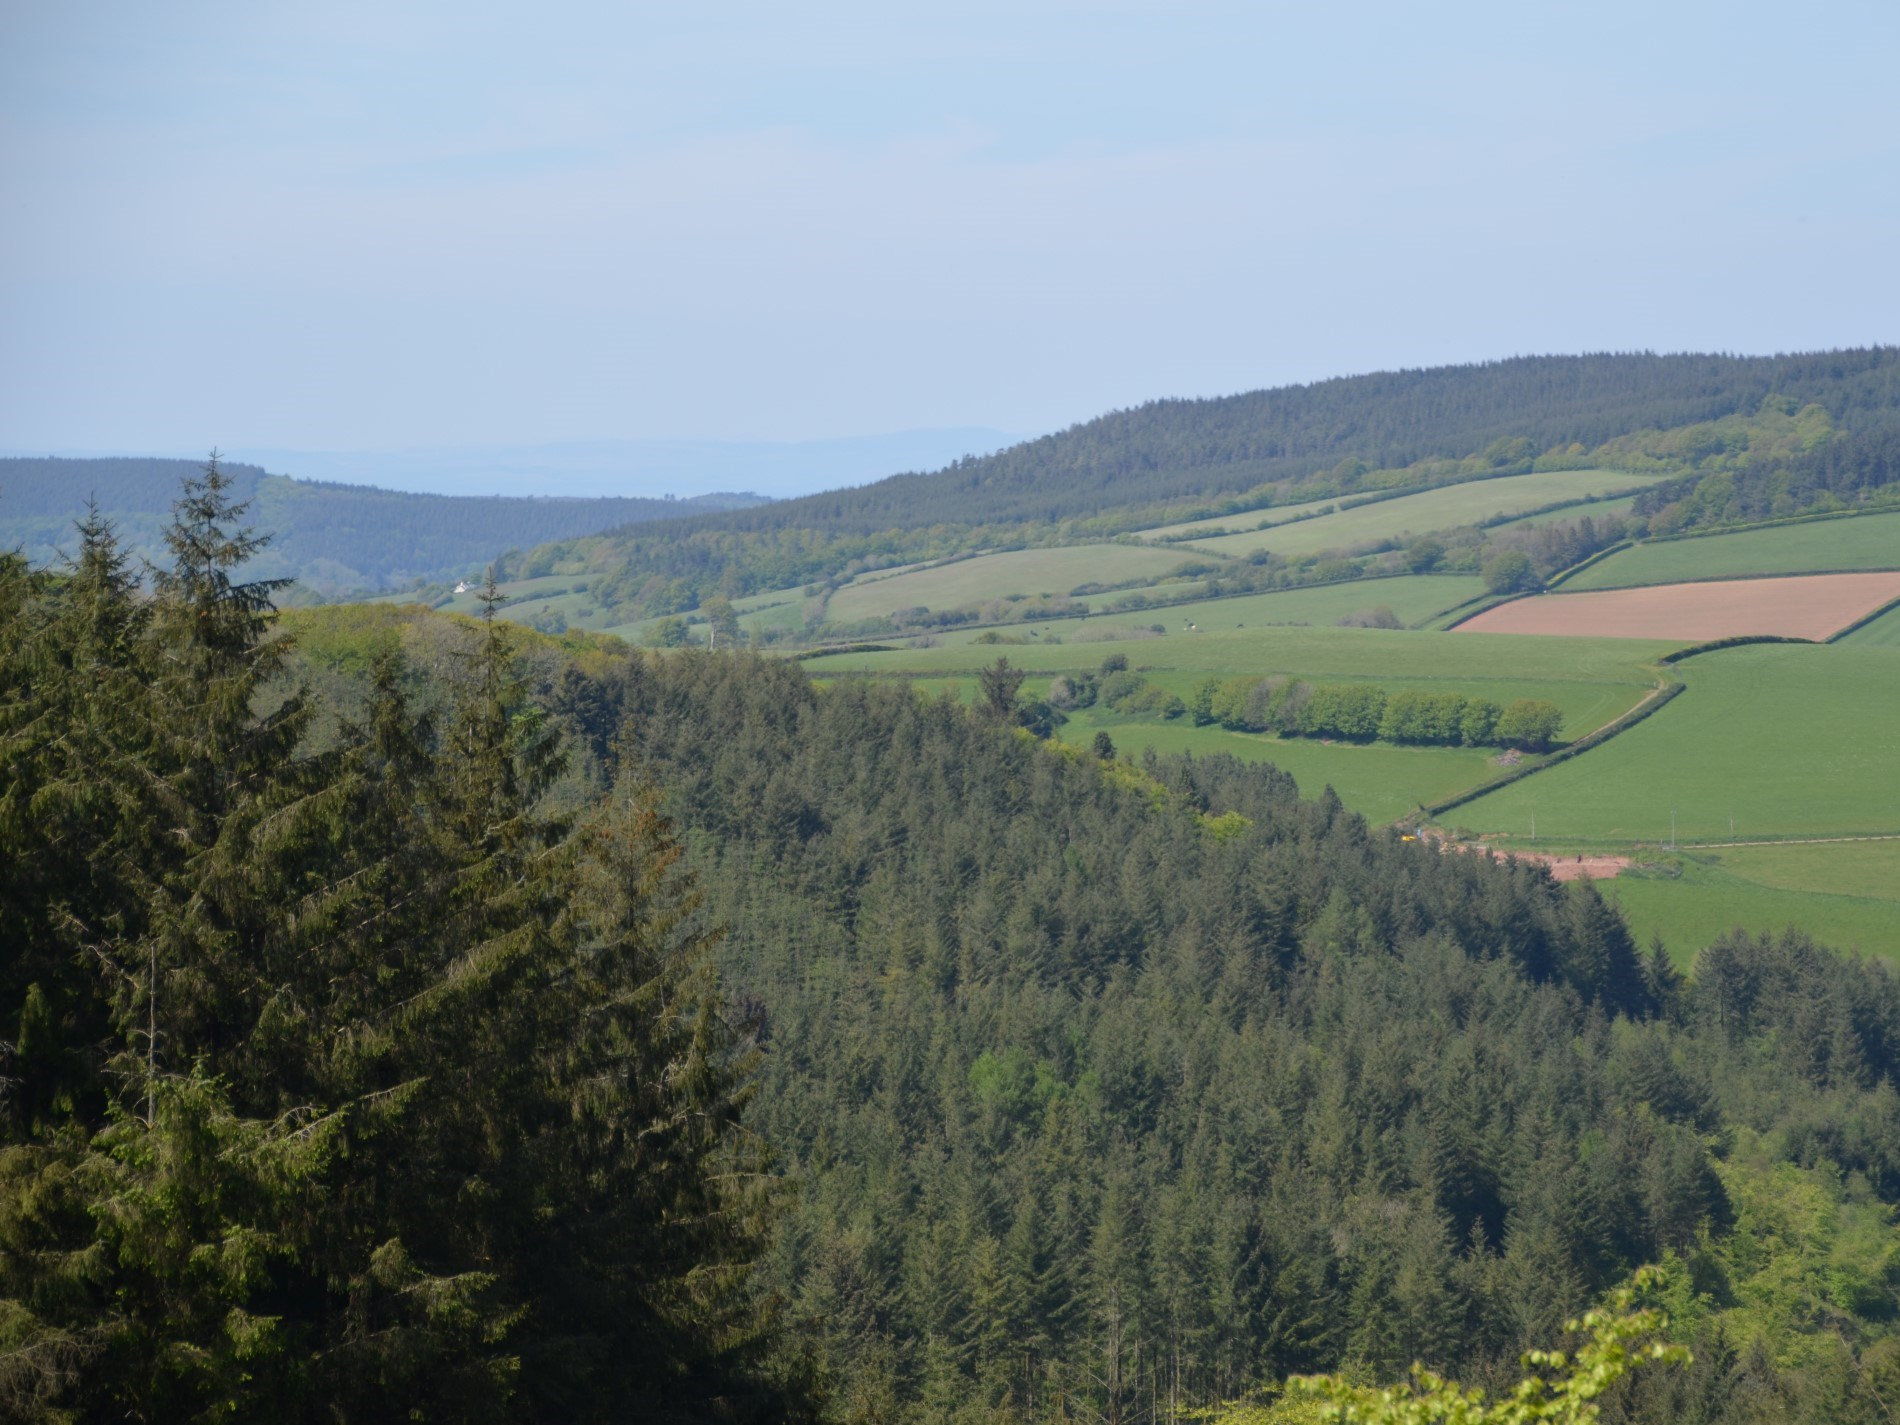 A short drive away is Exmoor National Park